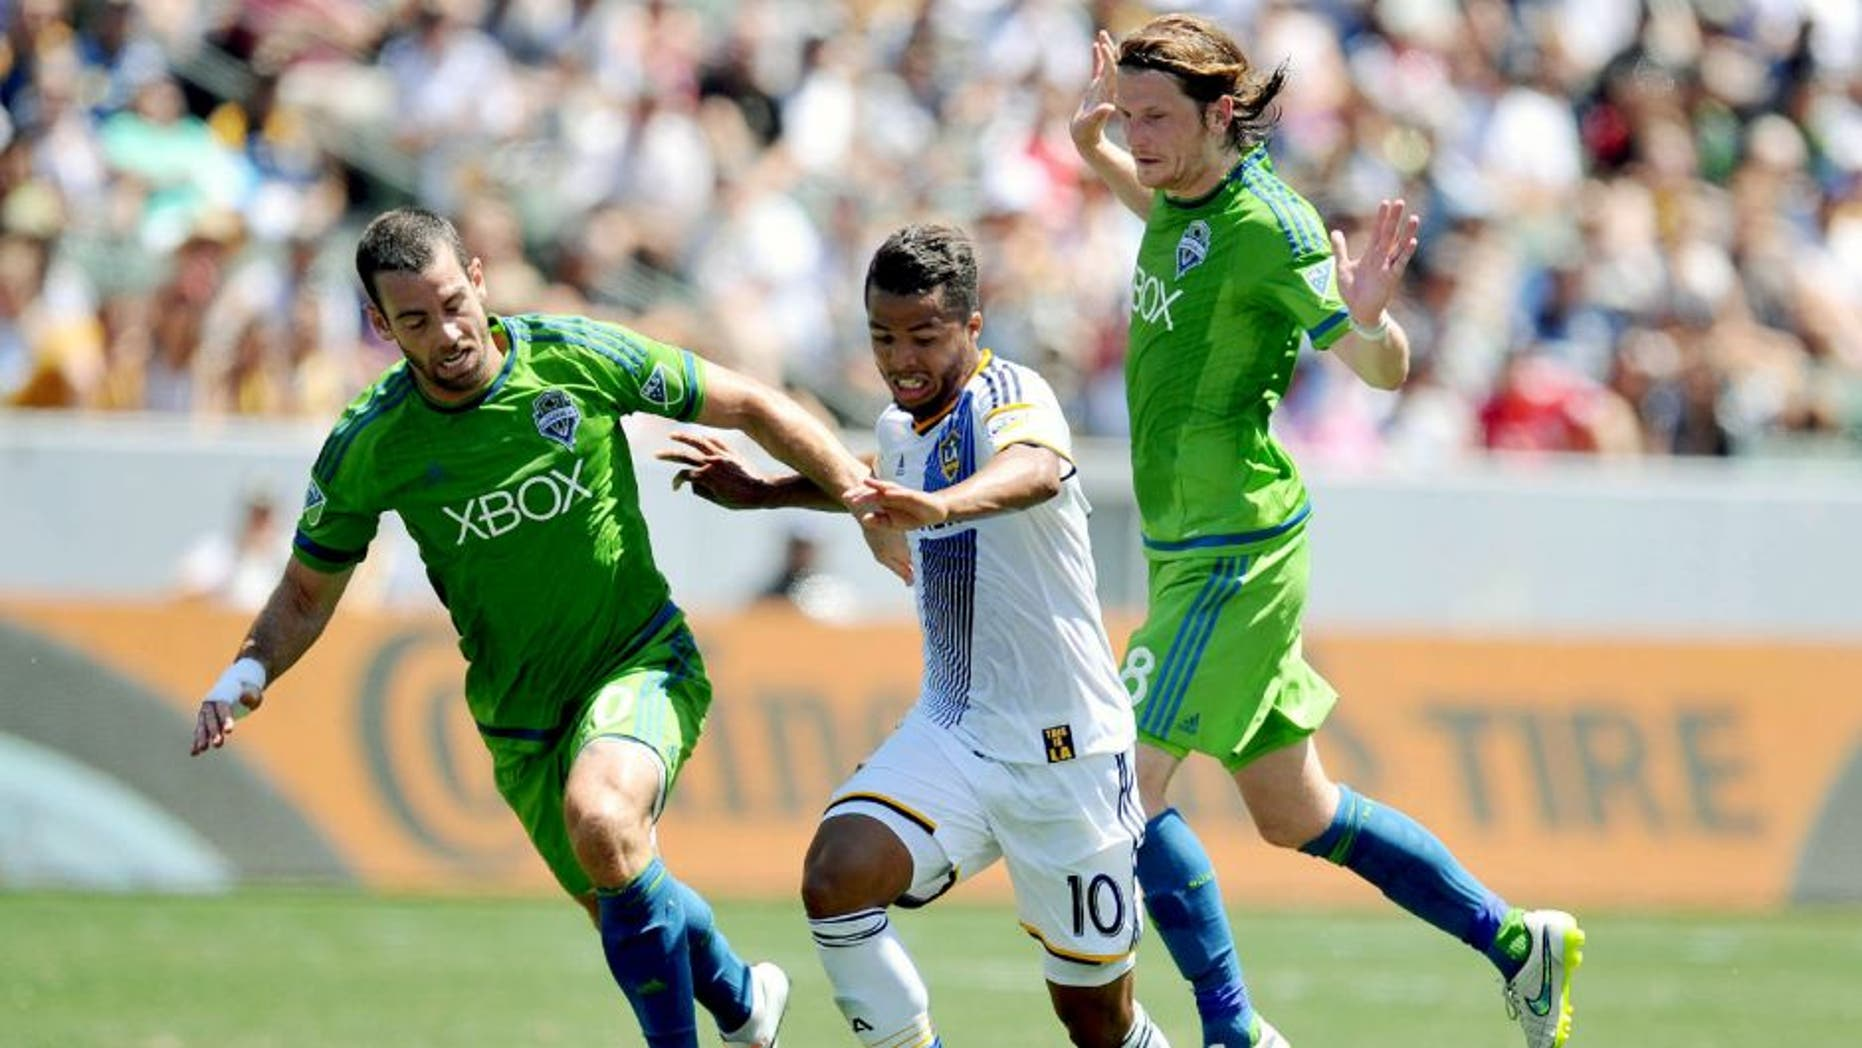 August 9, 2015; Carson, CA, USA; Los Angeles Galaxy midfielder/forward Giovani Dos Santos (10) moves the ball against Seattle Sounders defender Zach Scott (20) and midfielder Erik Friberg (28) during the first half at StubHub Center. Mandatory Credit: Gary A. Vasquez-USA TODAY Sports